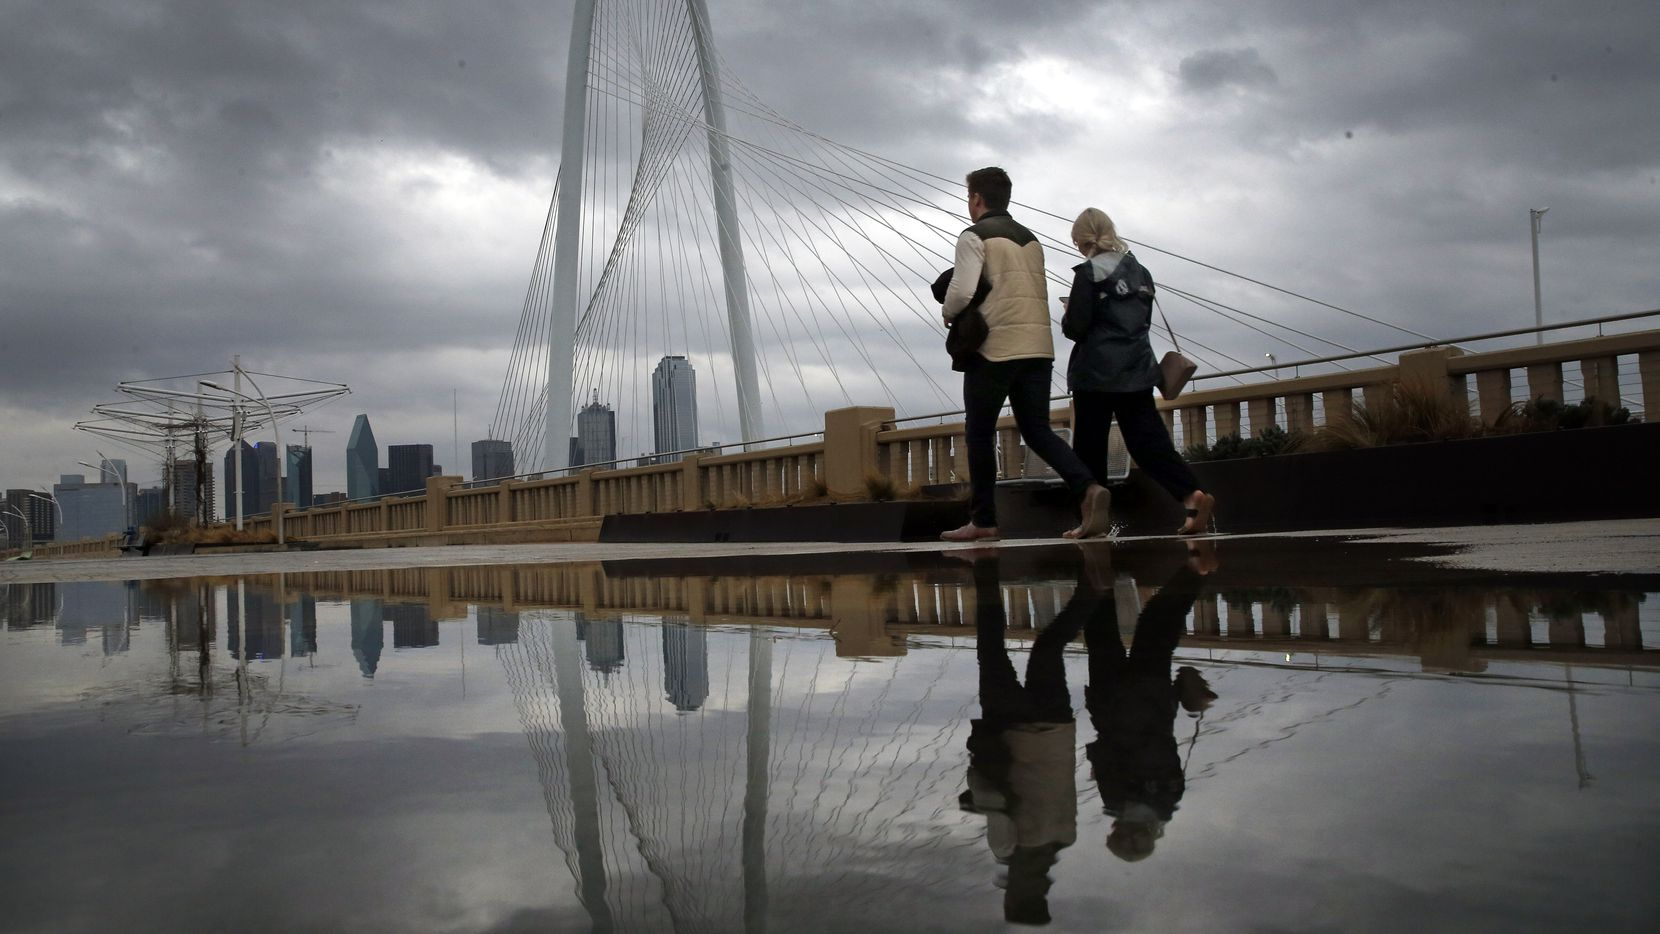 As clouds from a passing shower move across the Dallas skyline and the Margaret Hunt Hill Bridge, Michael McKinney and Maddi Reid of Dallas take a stroll across the Continental Street Bridge in Dallas on the their fourth wedding anniversary, Friday, January 10, 2020. (Tom Fox/The Dallas Morning News)